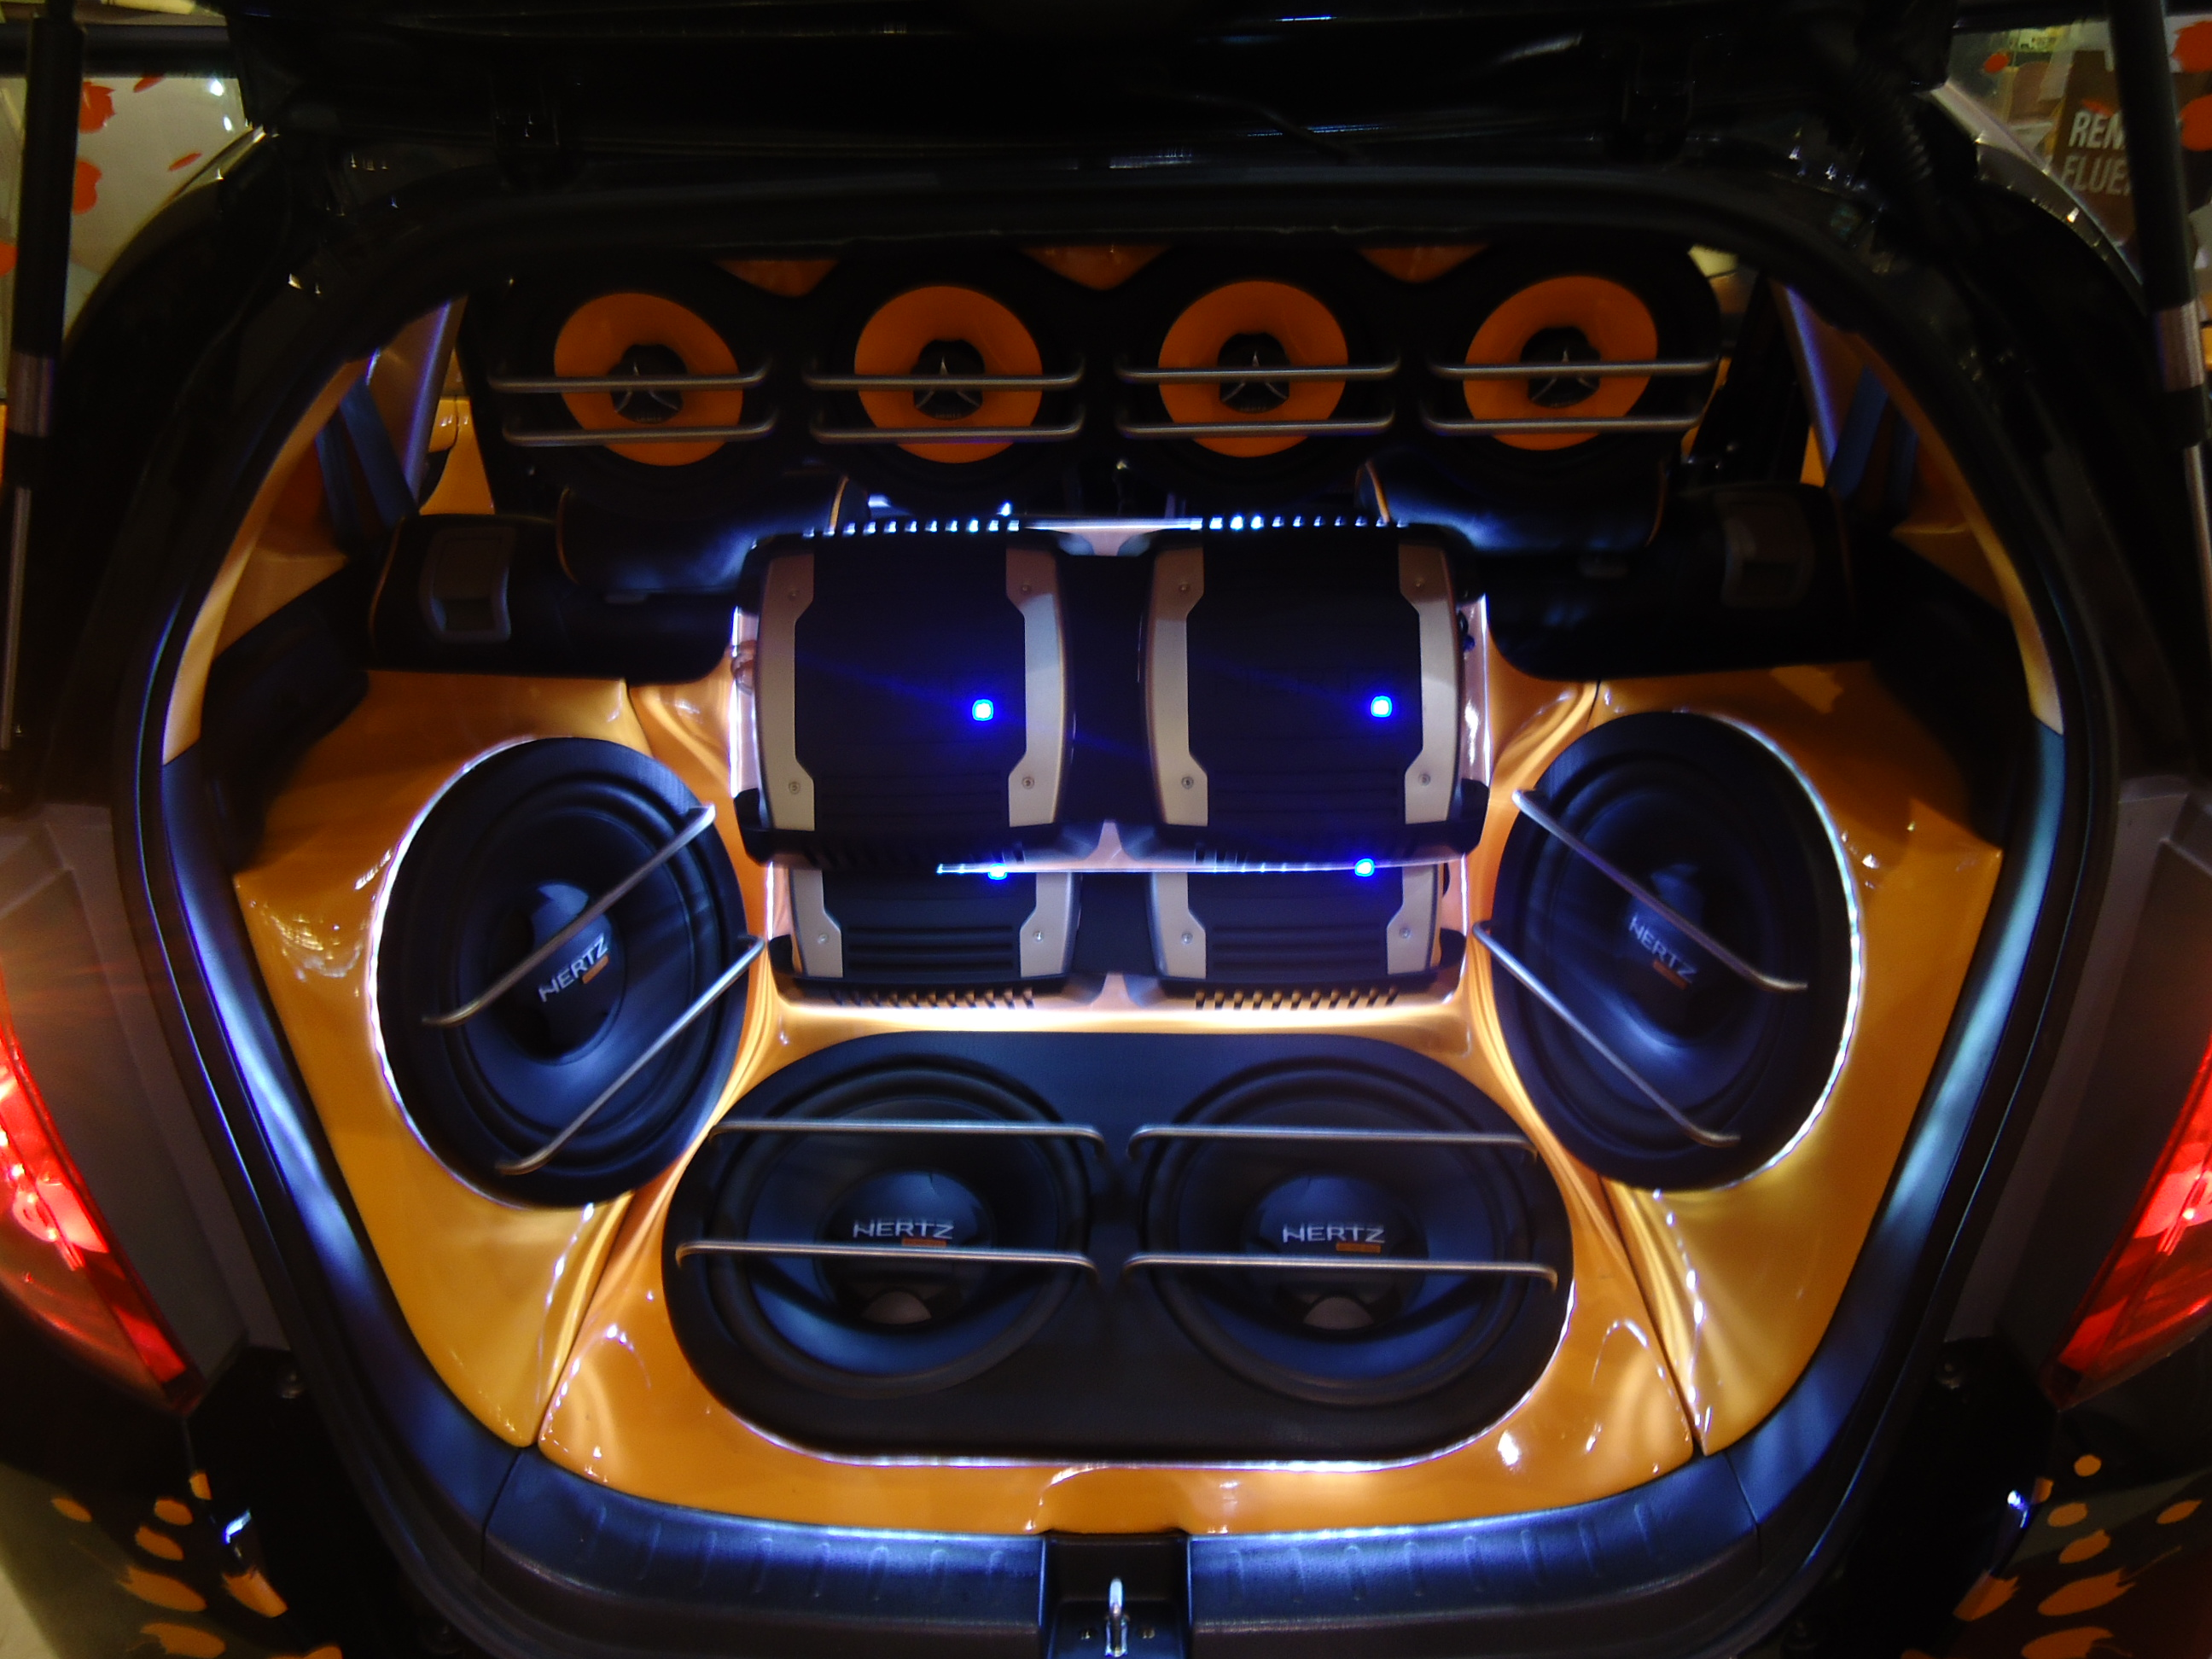 File:Car Audio System Fitted in Honda Jazz.JPG - Wikipedia, the free